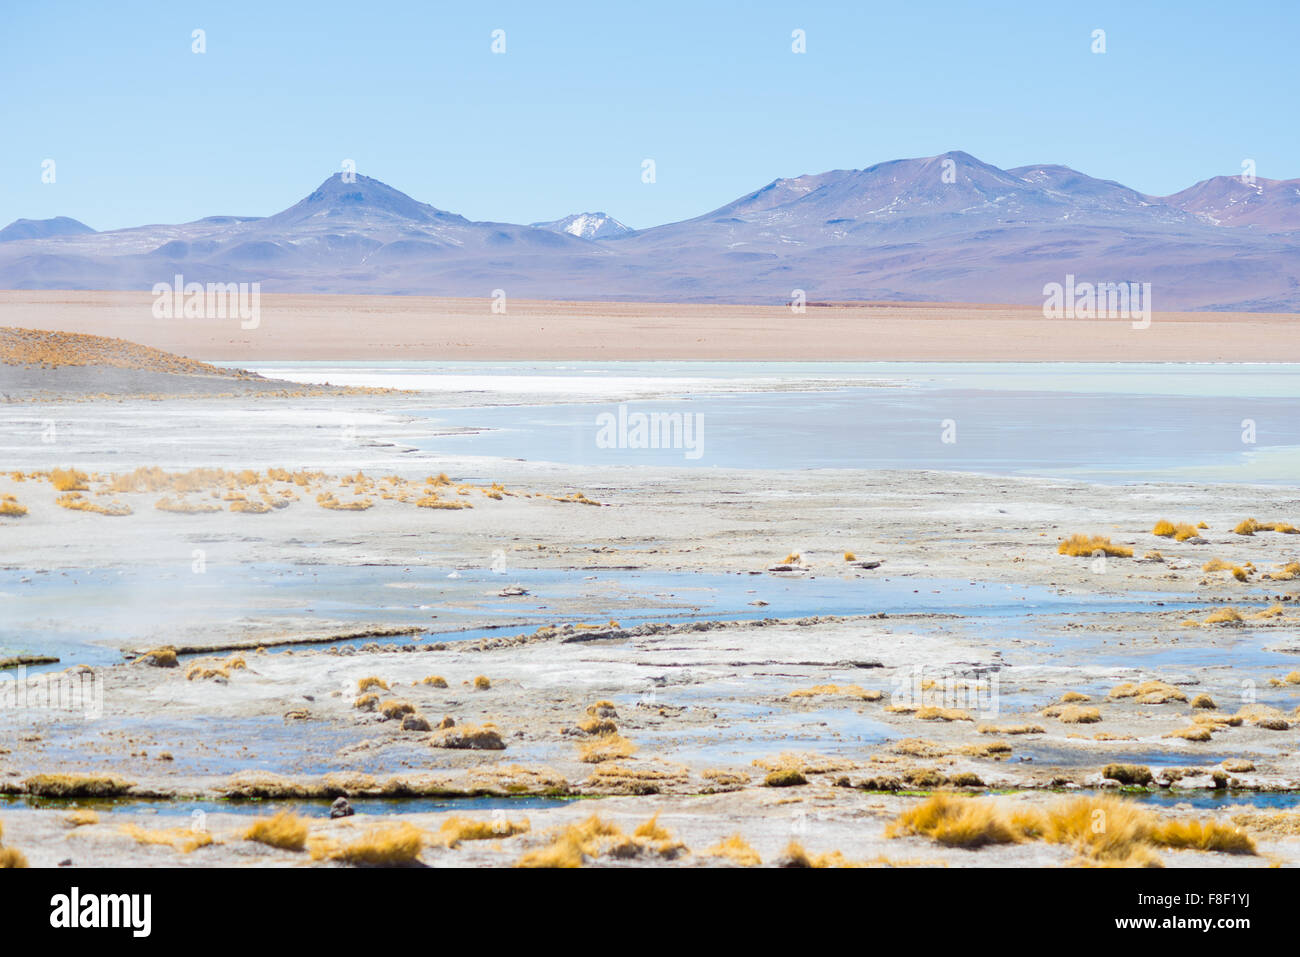 Hot water ponds in geothermal region of the Andean Highlands in Bolivia. Frozen salt lake, distant mountain range - Stock Image